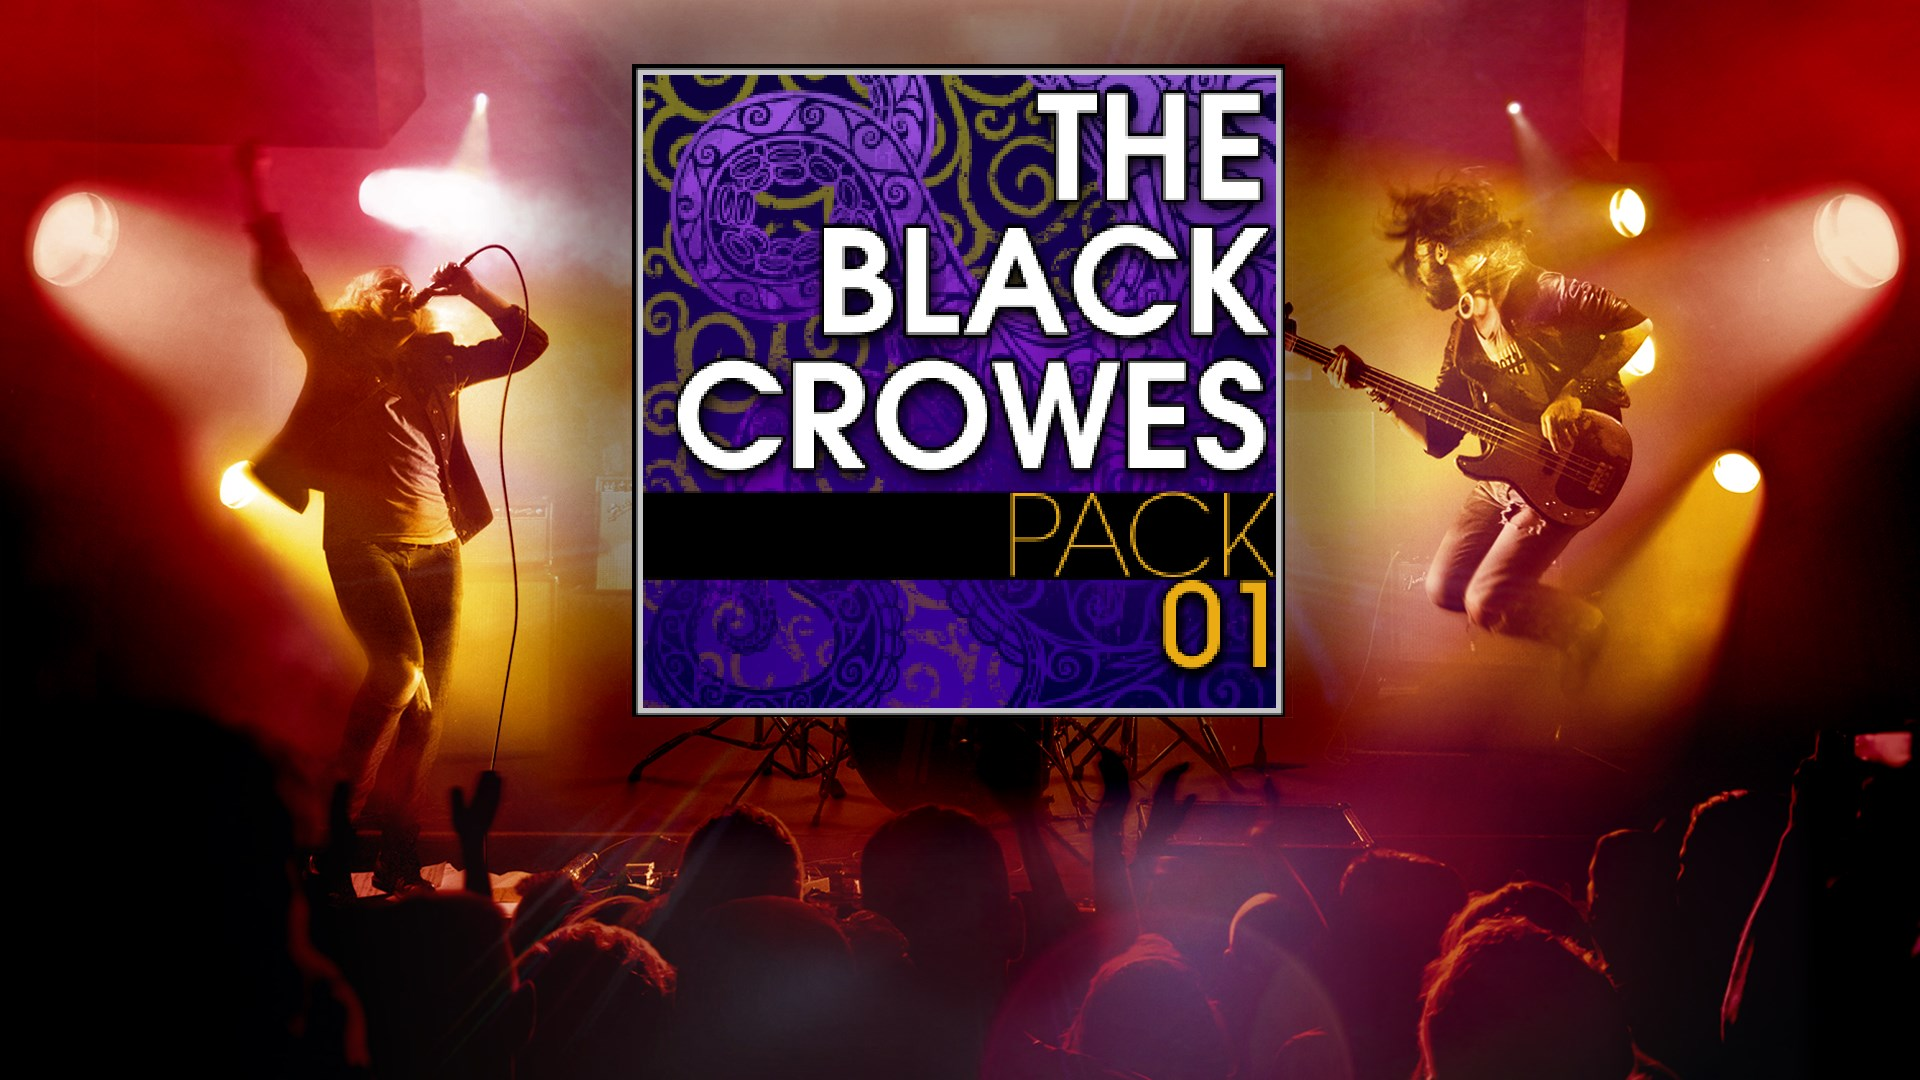 The Black Crowes Pack 01